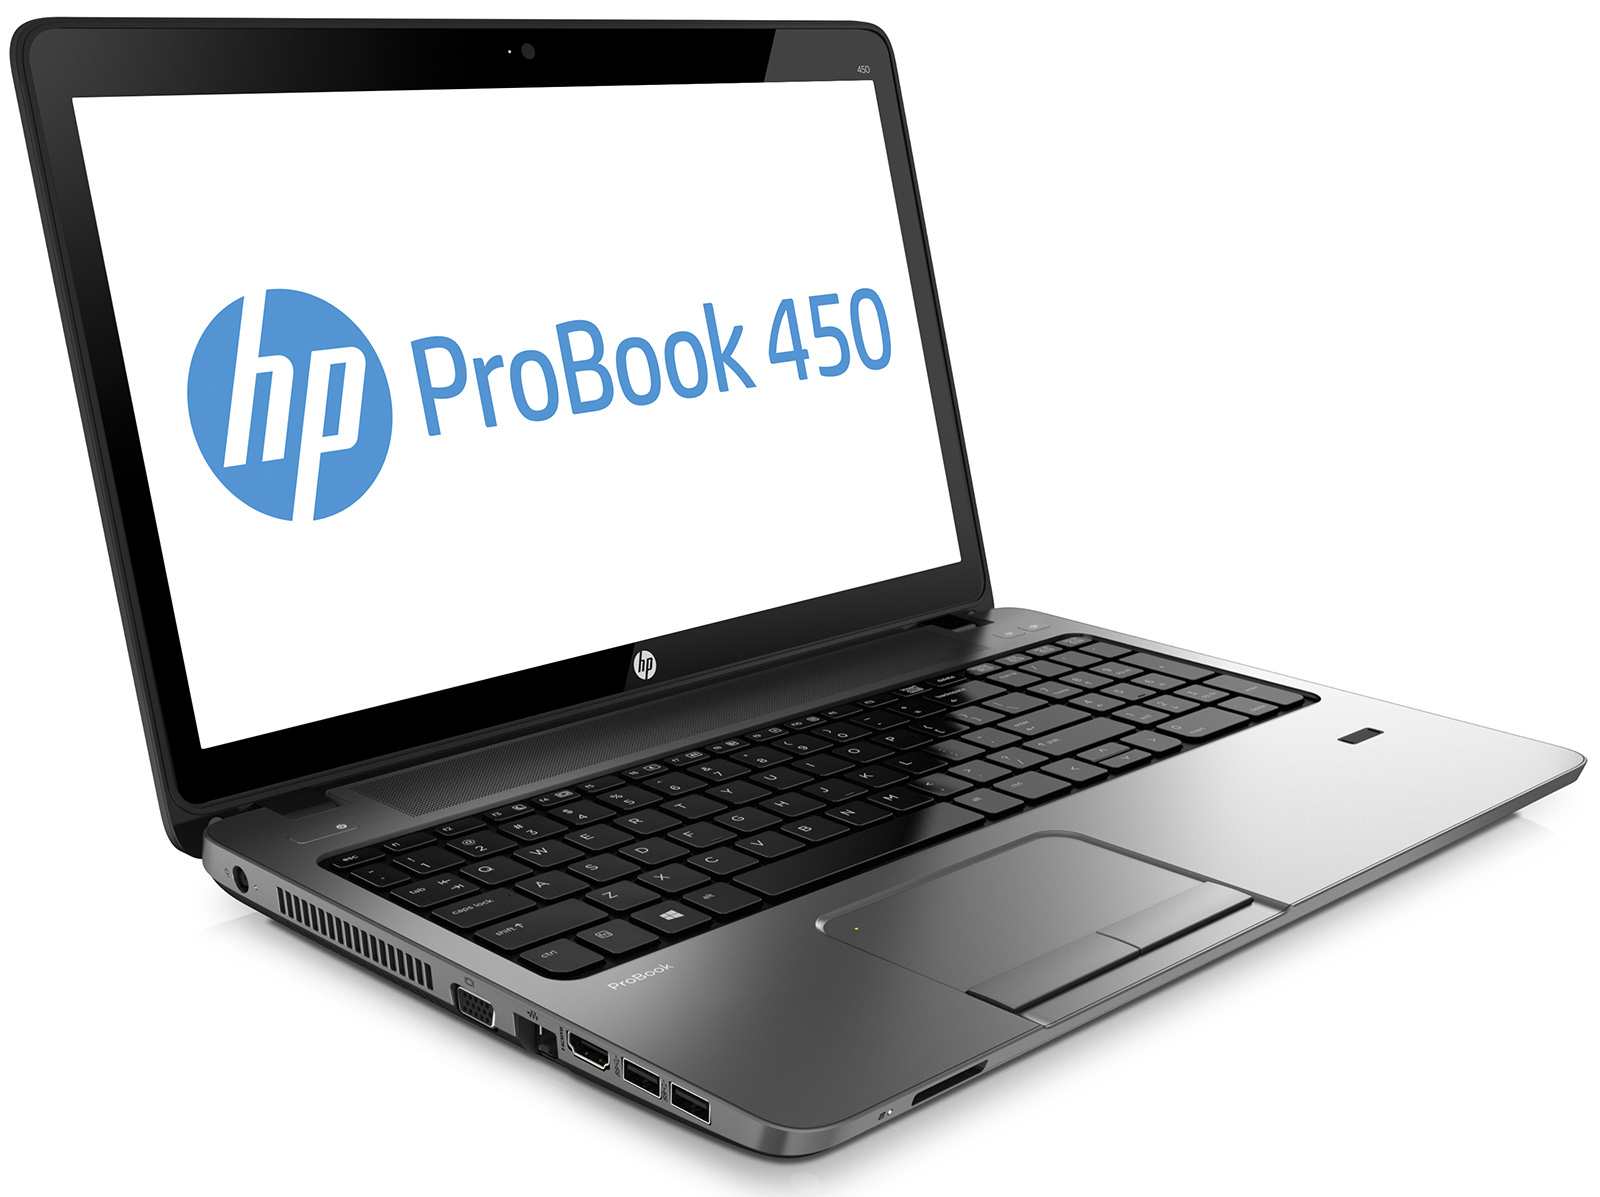 HP ProBook 450 Review